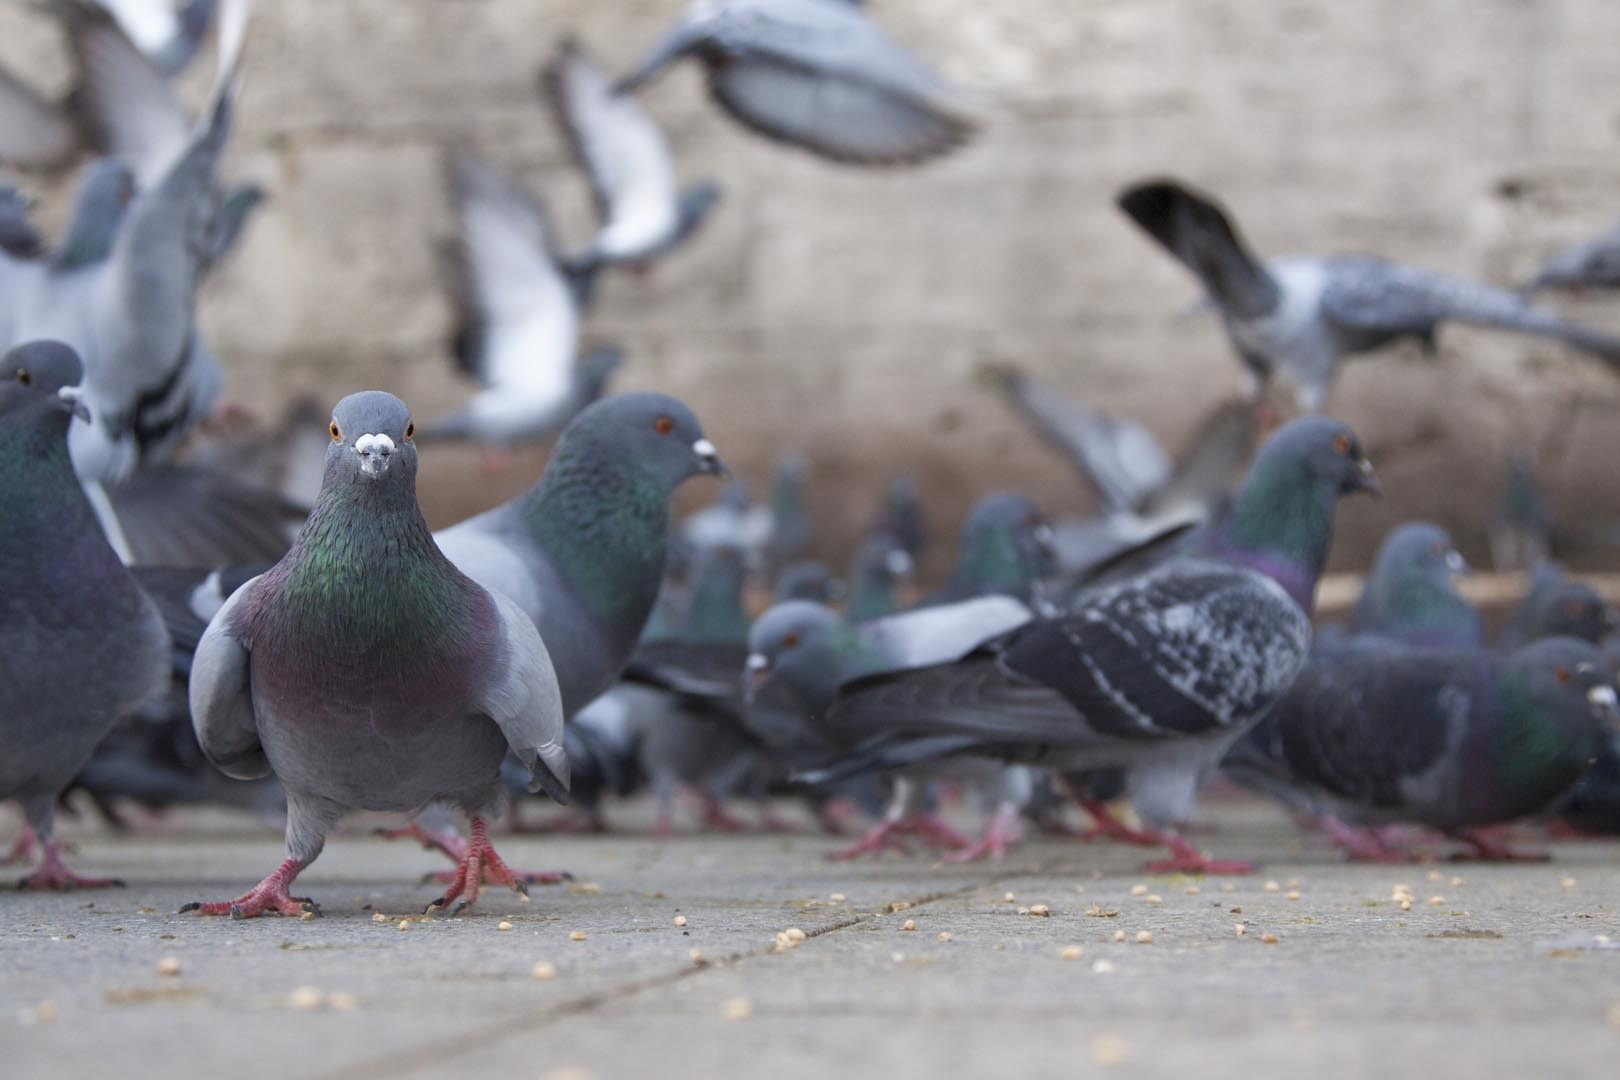 Flock of pigeons eating on the floor